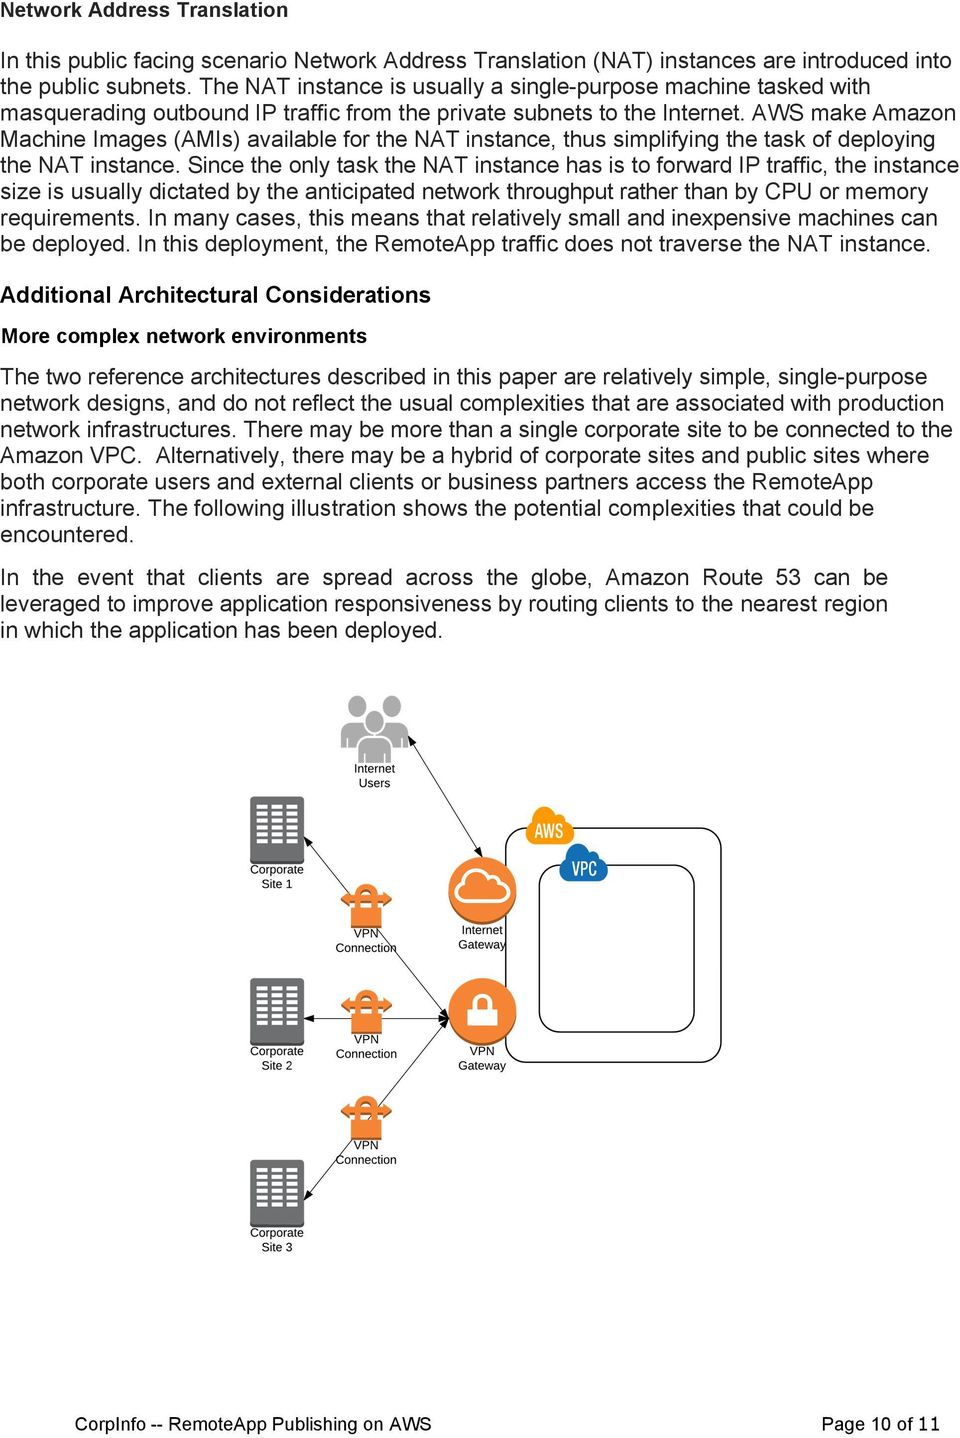 AWS make Amazon Machine Images (AMIs) available for the NAT instance, thus simplifying the task of deploying the NAT instance.